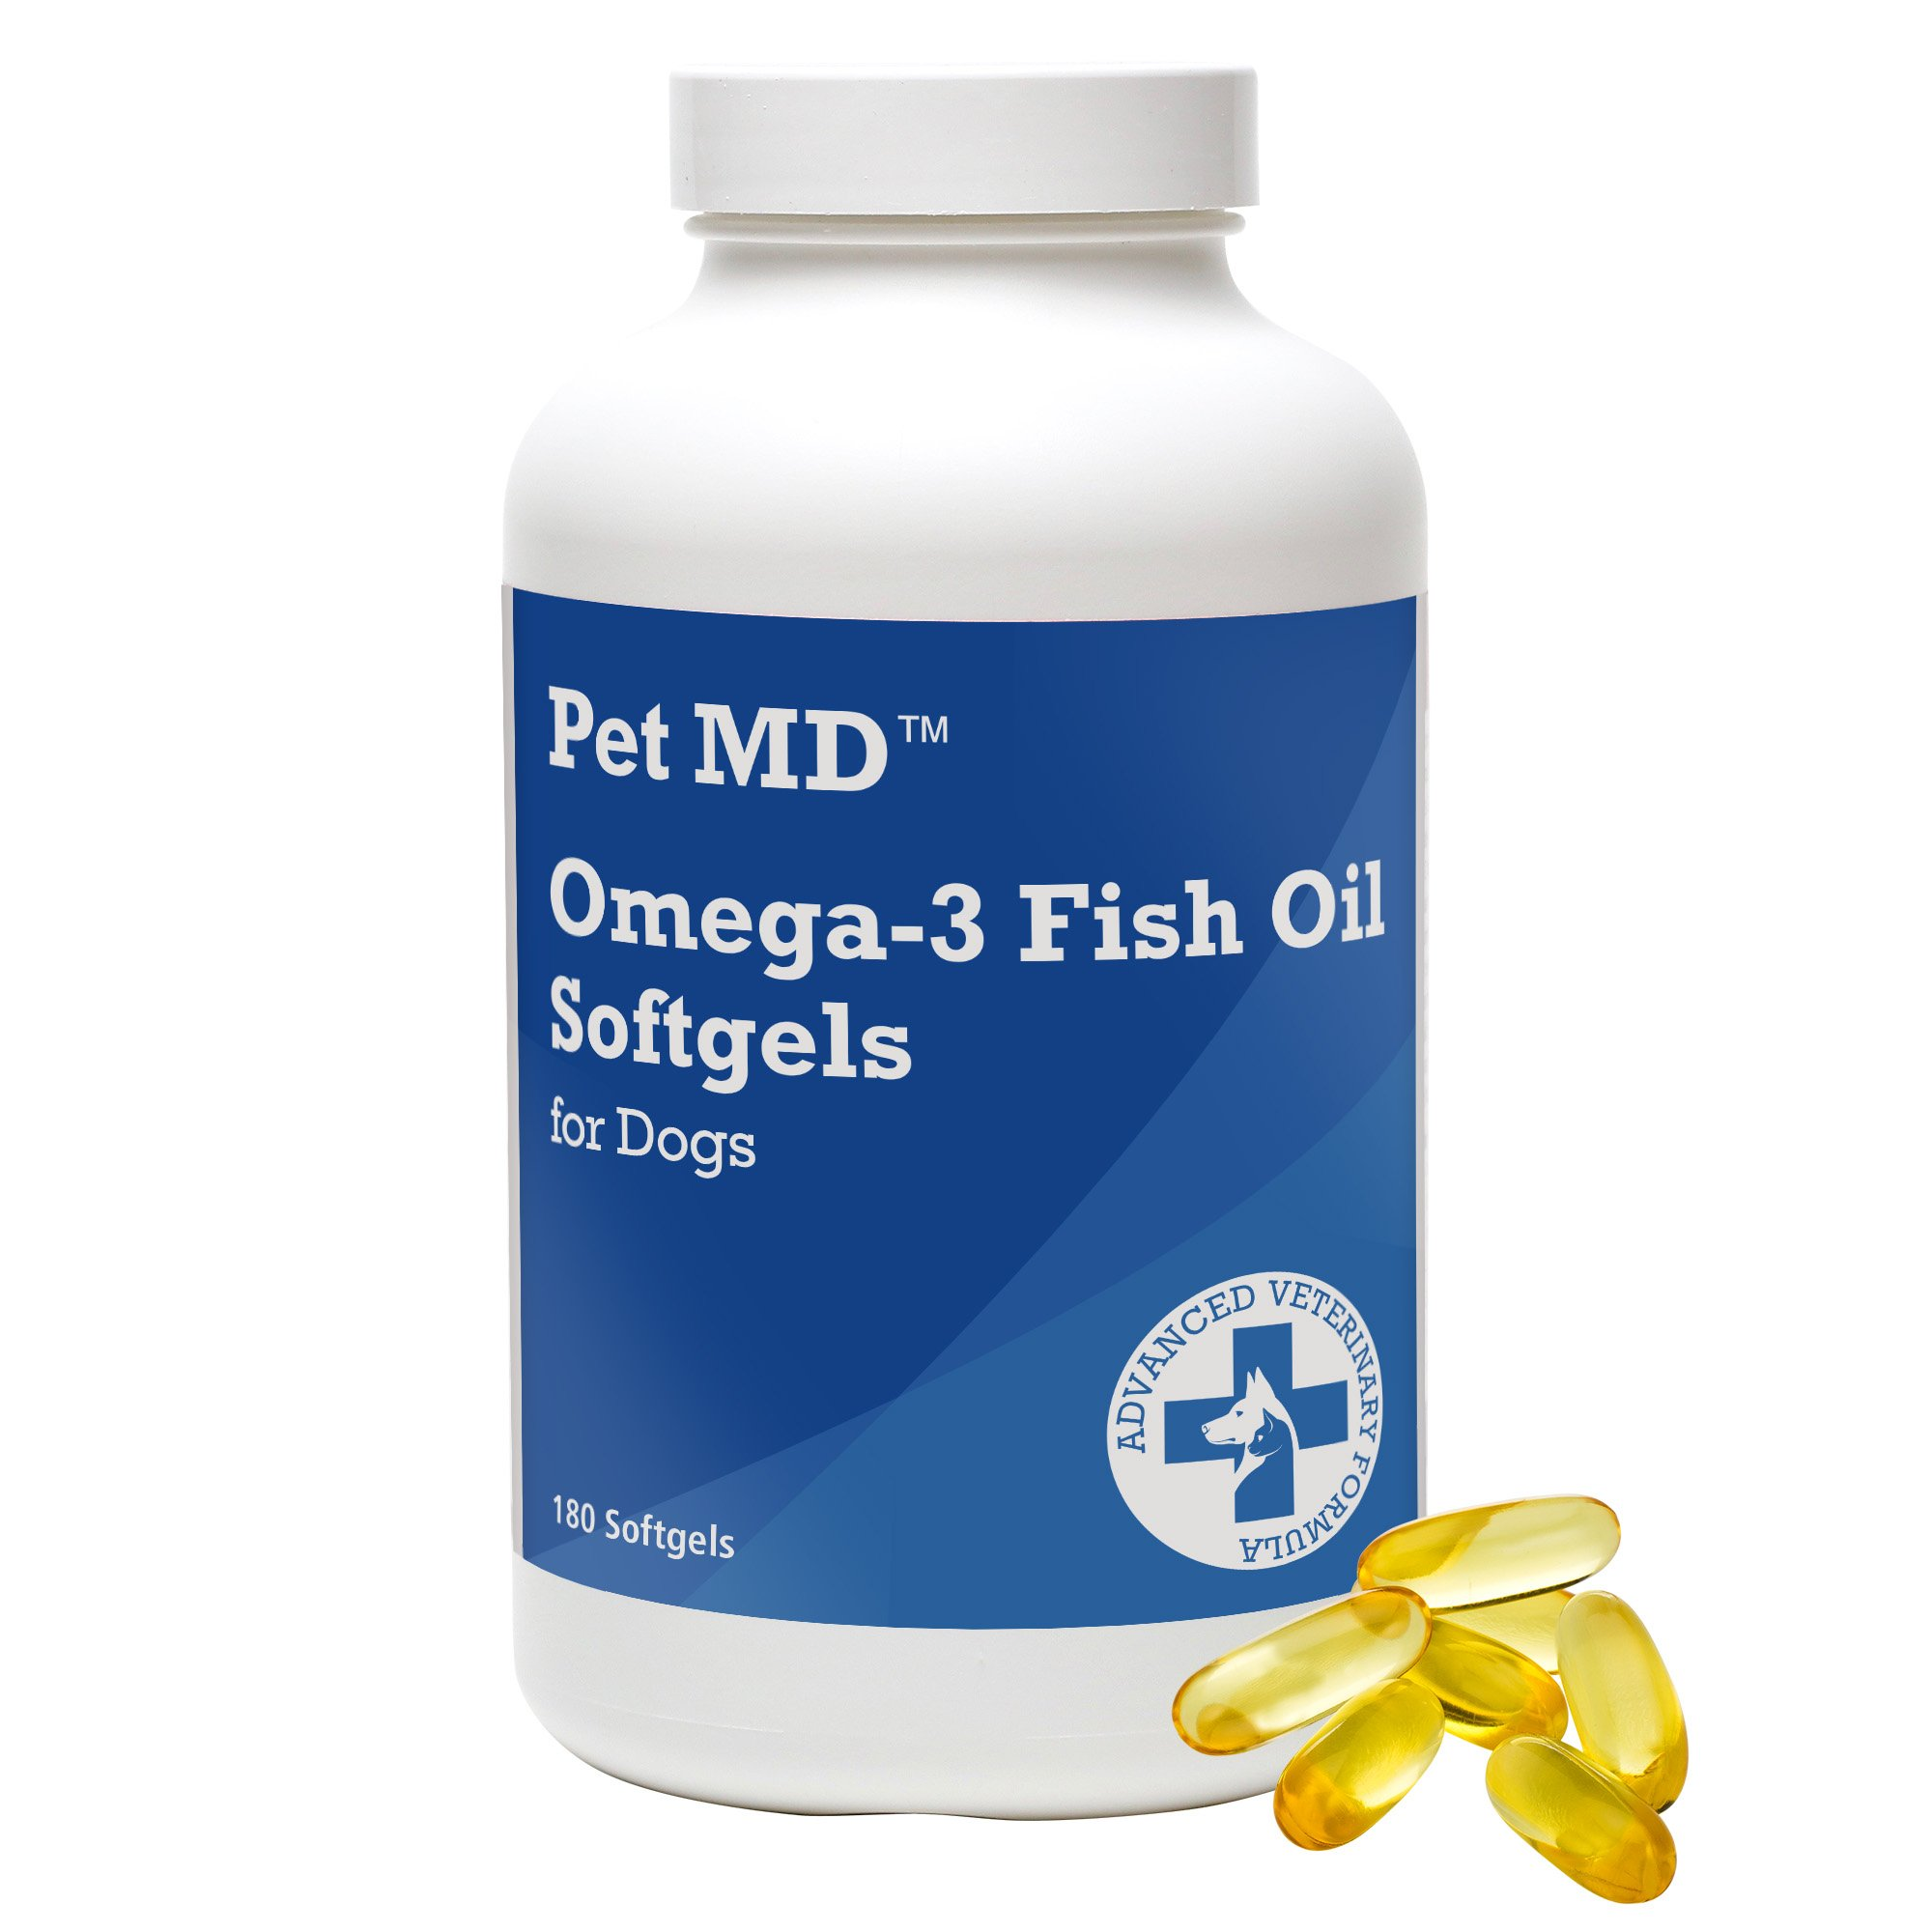 Pet MD - Omega 3 Fish Oil Supplement for Dogs - Skin, Coat, Joint, and Heart Health - 180 Softgels by Pet MD